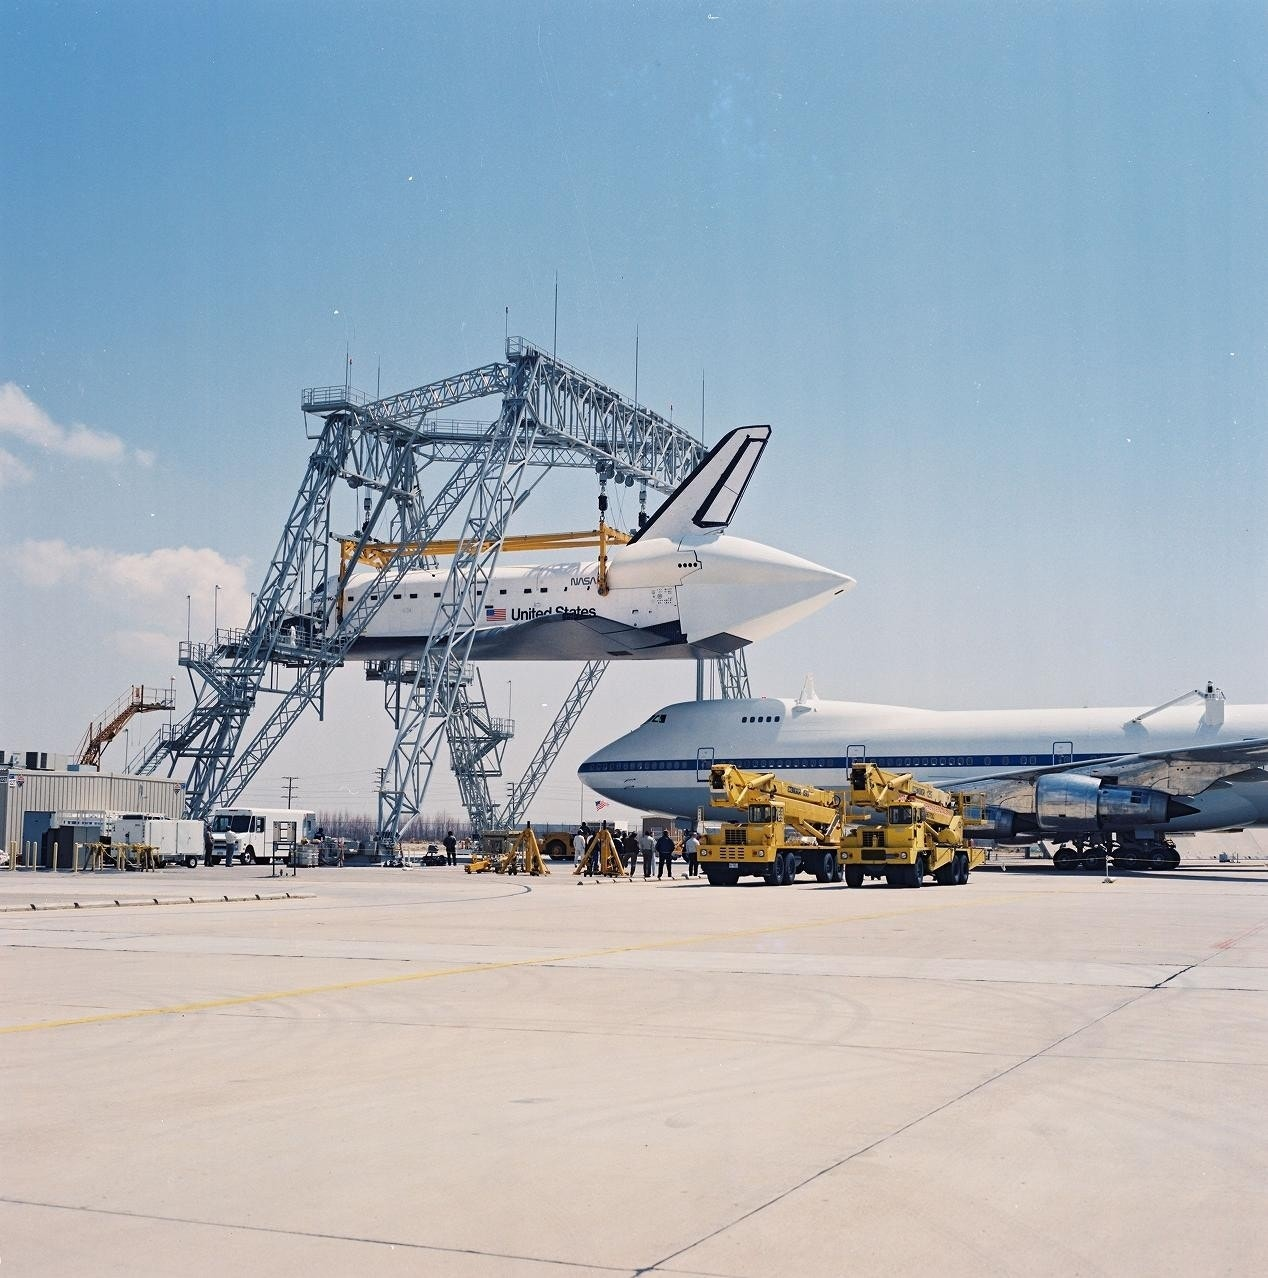 space shuttles were built where - photo #24